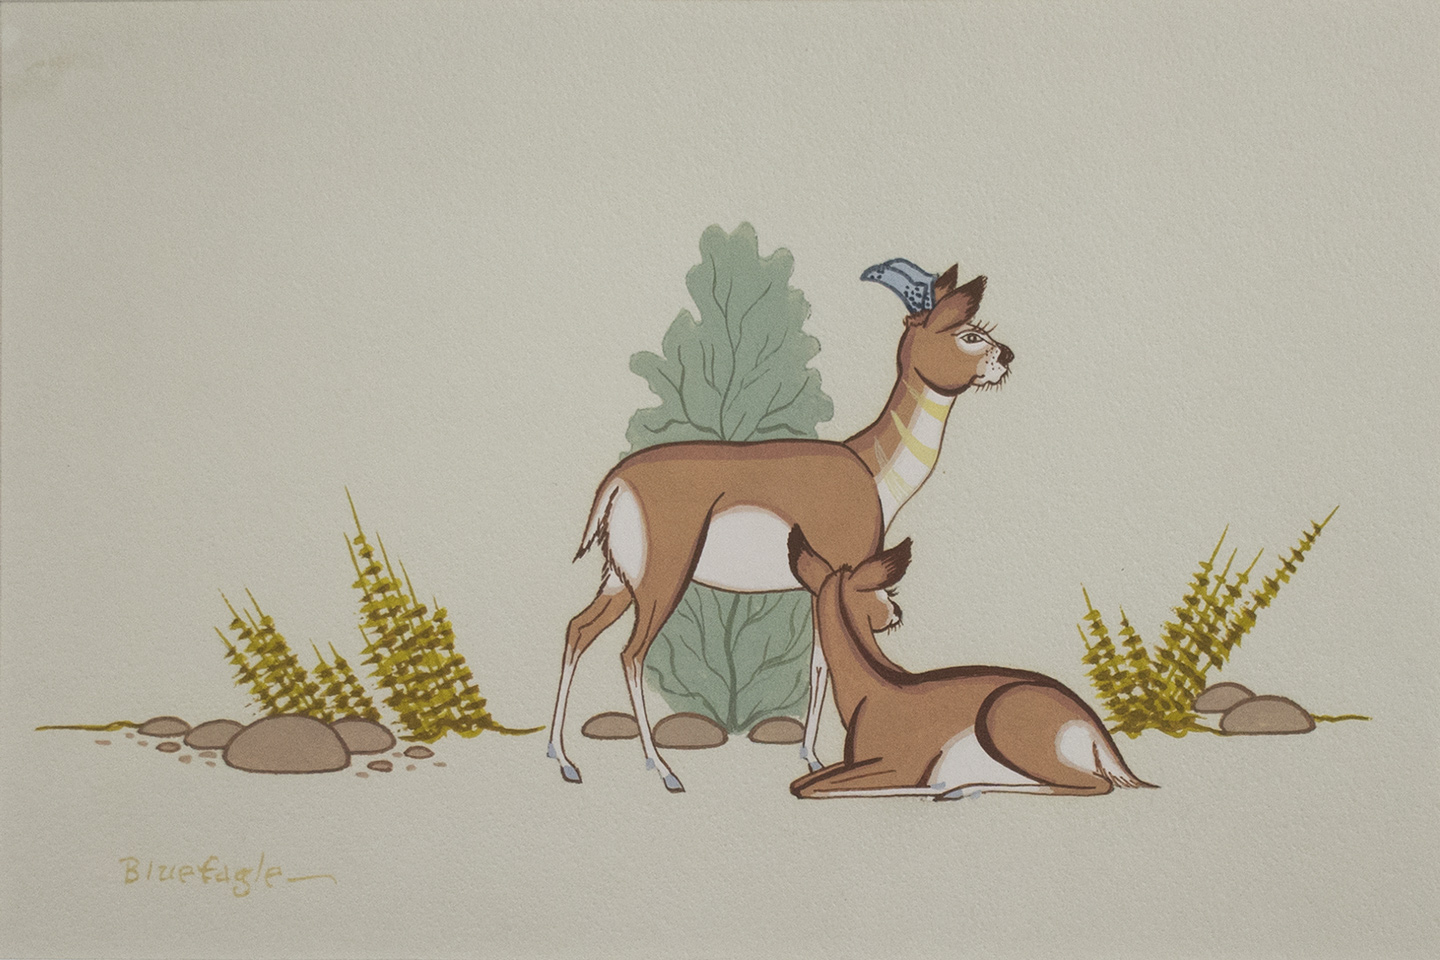 A pair of small animals, possibly deer, painted by Acee Blue Eagle